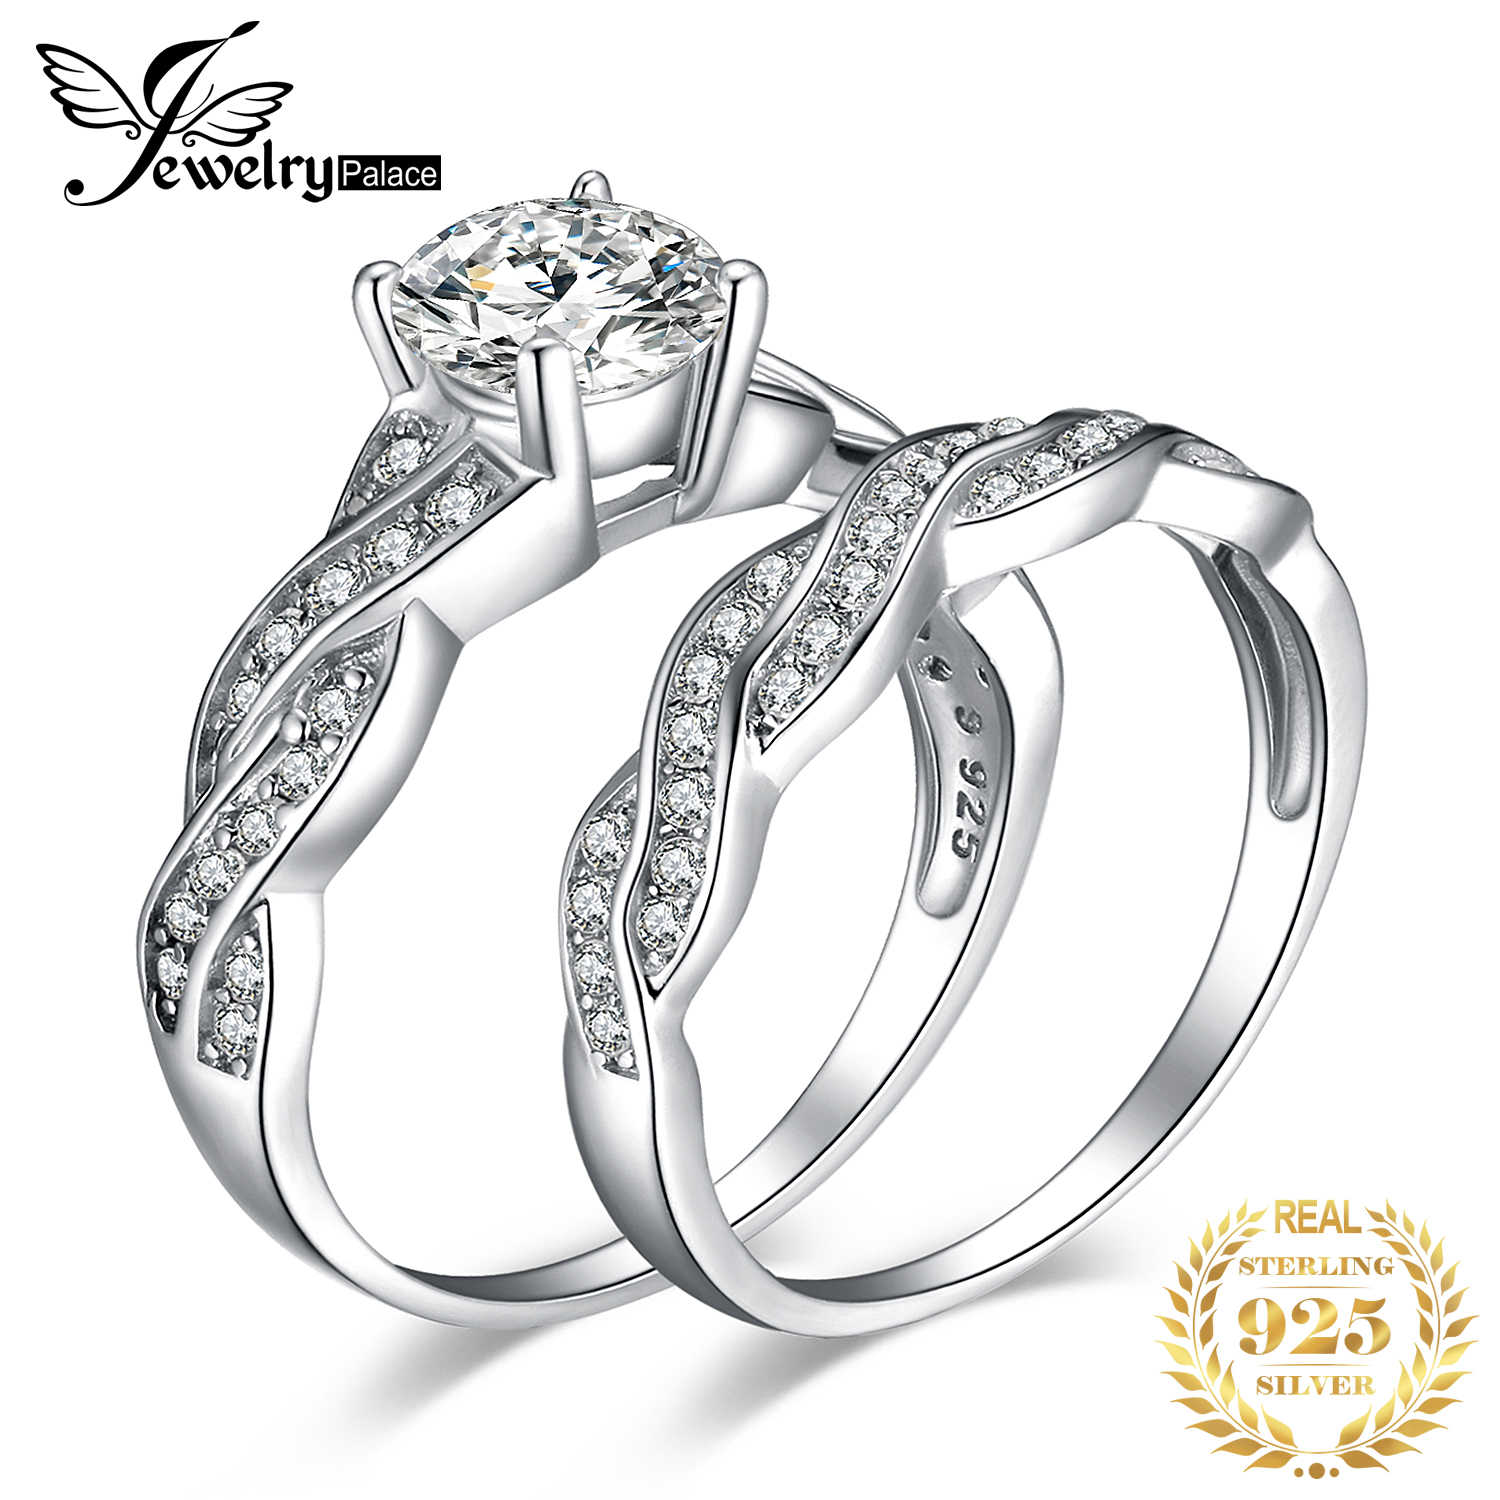 Jpalace Infinity Engagement Ring Set 925 Sterling Silver Rings For